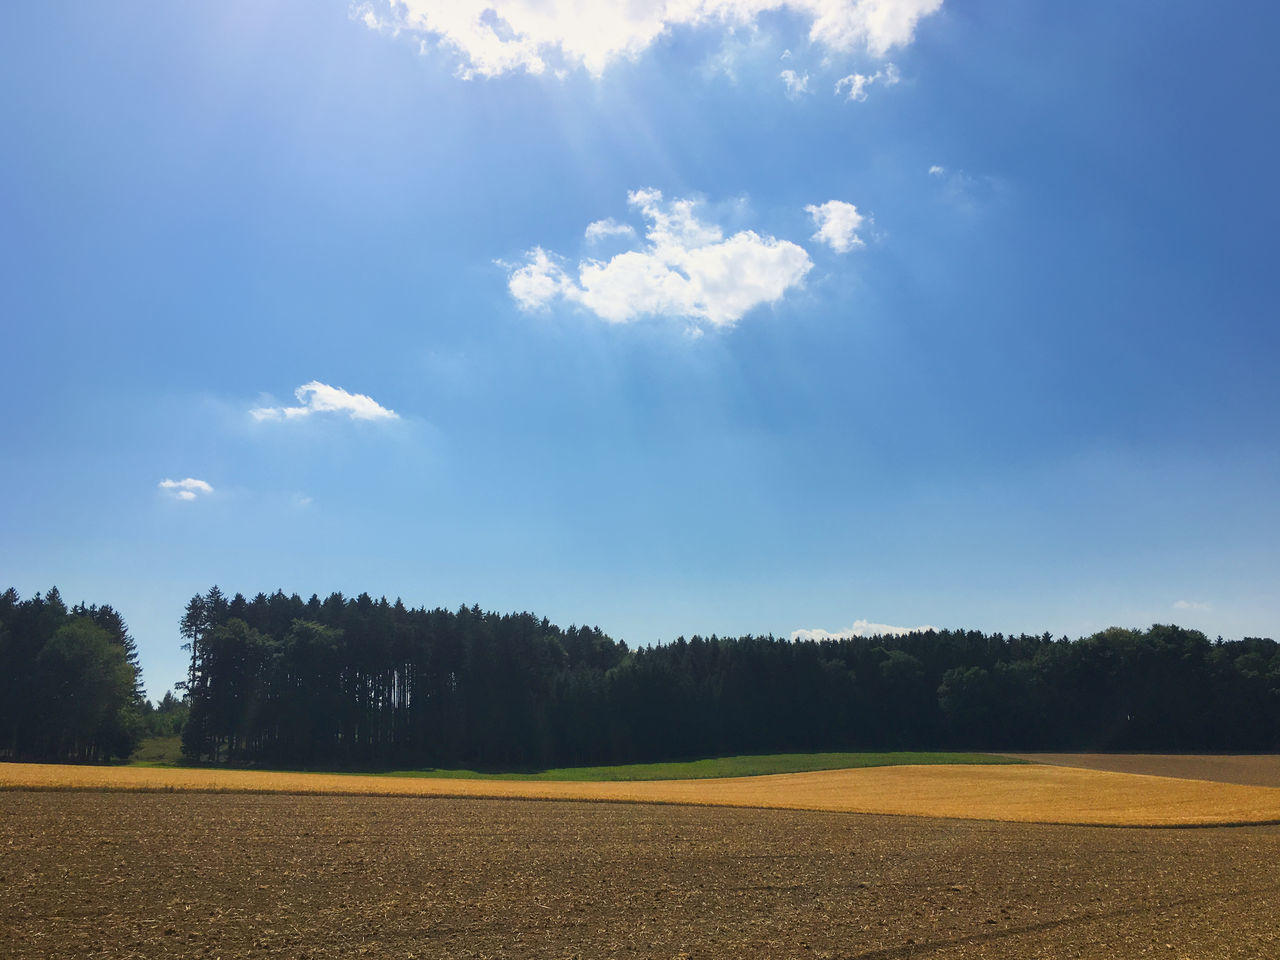 Feld und Wald 34 Agriculture Beauty In Nature Cloud - Sky Day Field Growth Landscape Nature No People Outdoors Rural Scene Scenics Sky Tranquil Scene Tranquility Tree